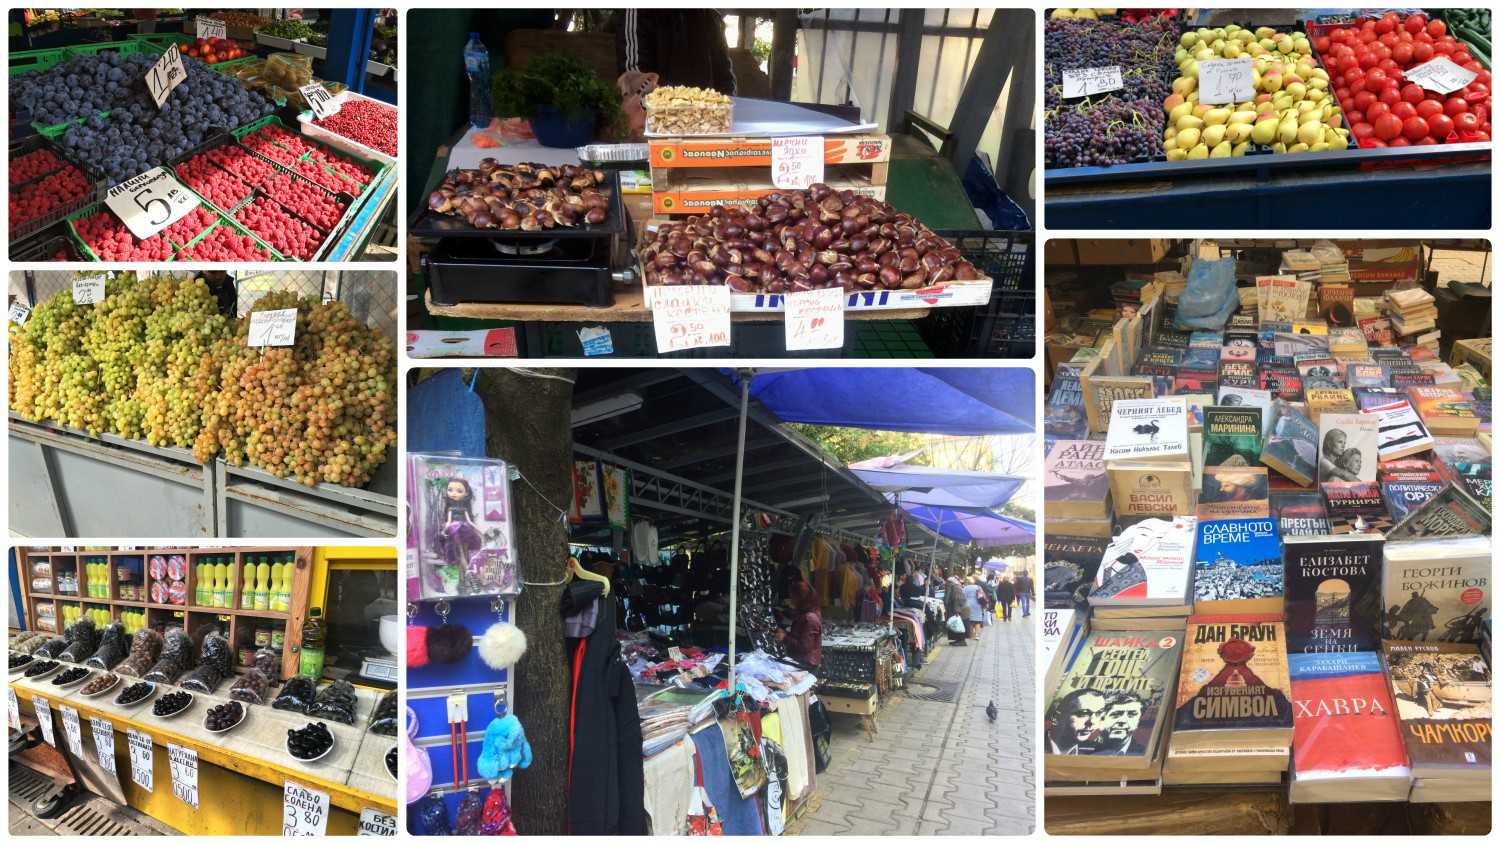 We found wonderful markets all over Sofia, Bulgaria. Everything from food, to books and clothing could be found at different markets throughout the city.